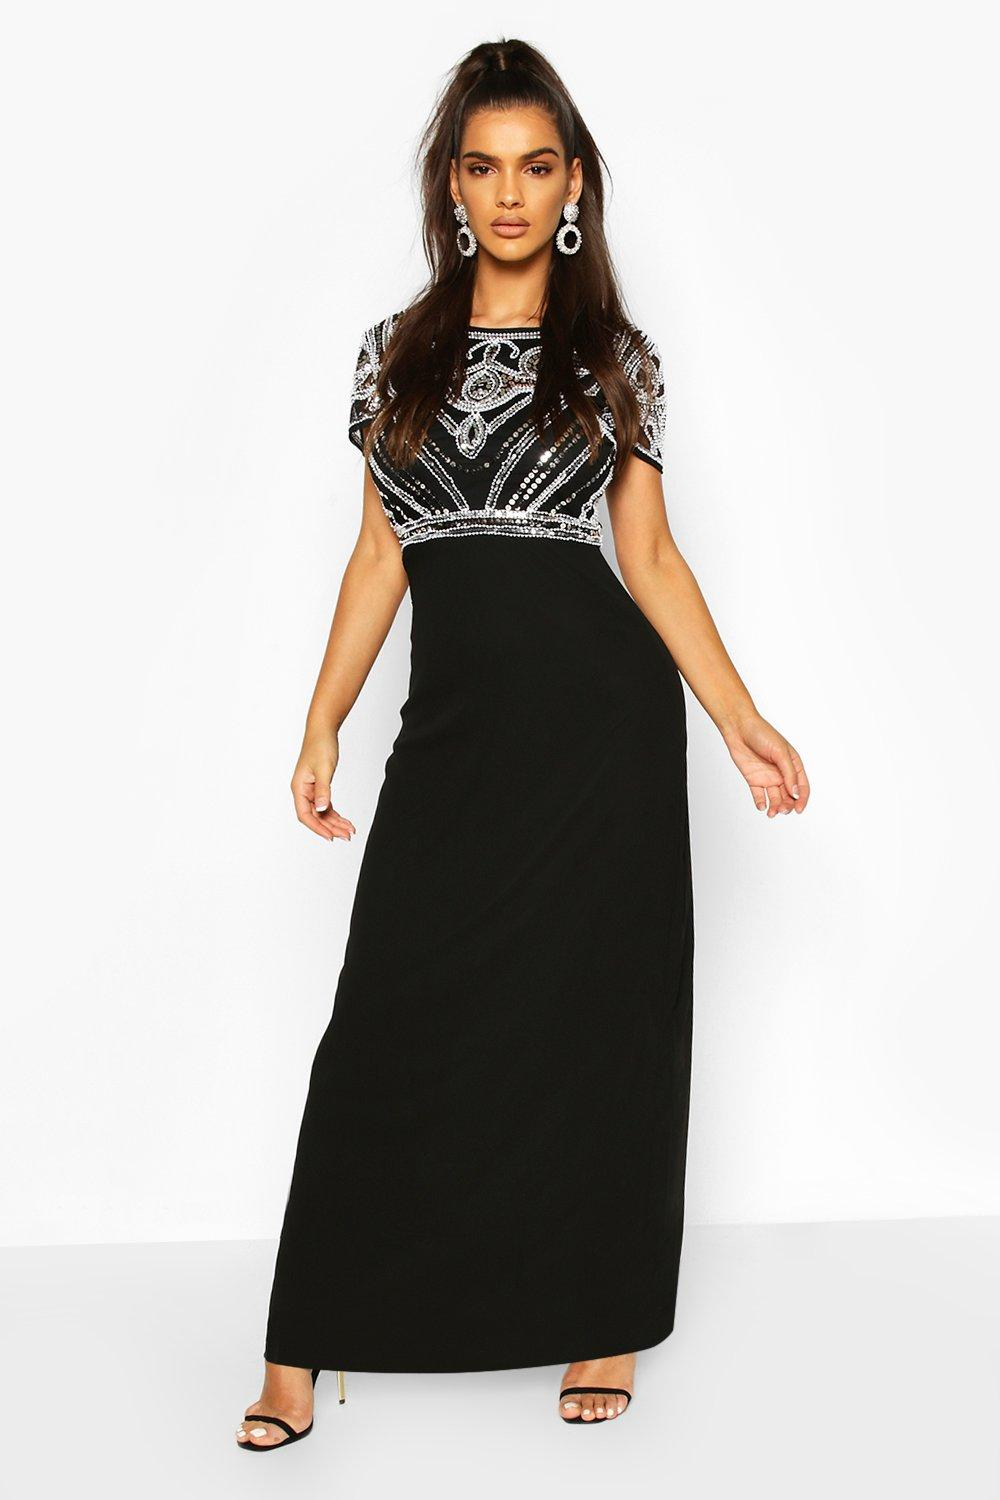 Boutique francesca embellished top maxi dress at for Boohoo dresses for weddings